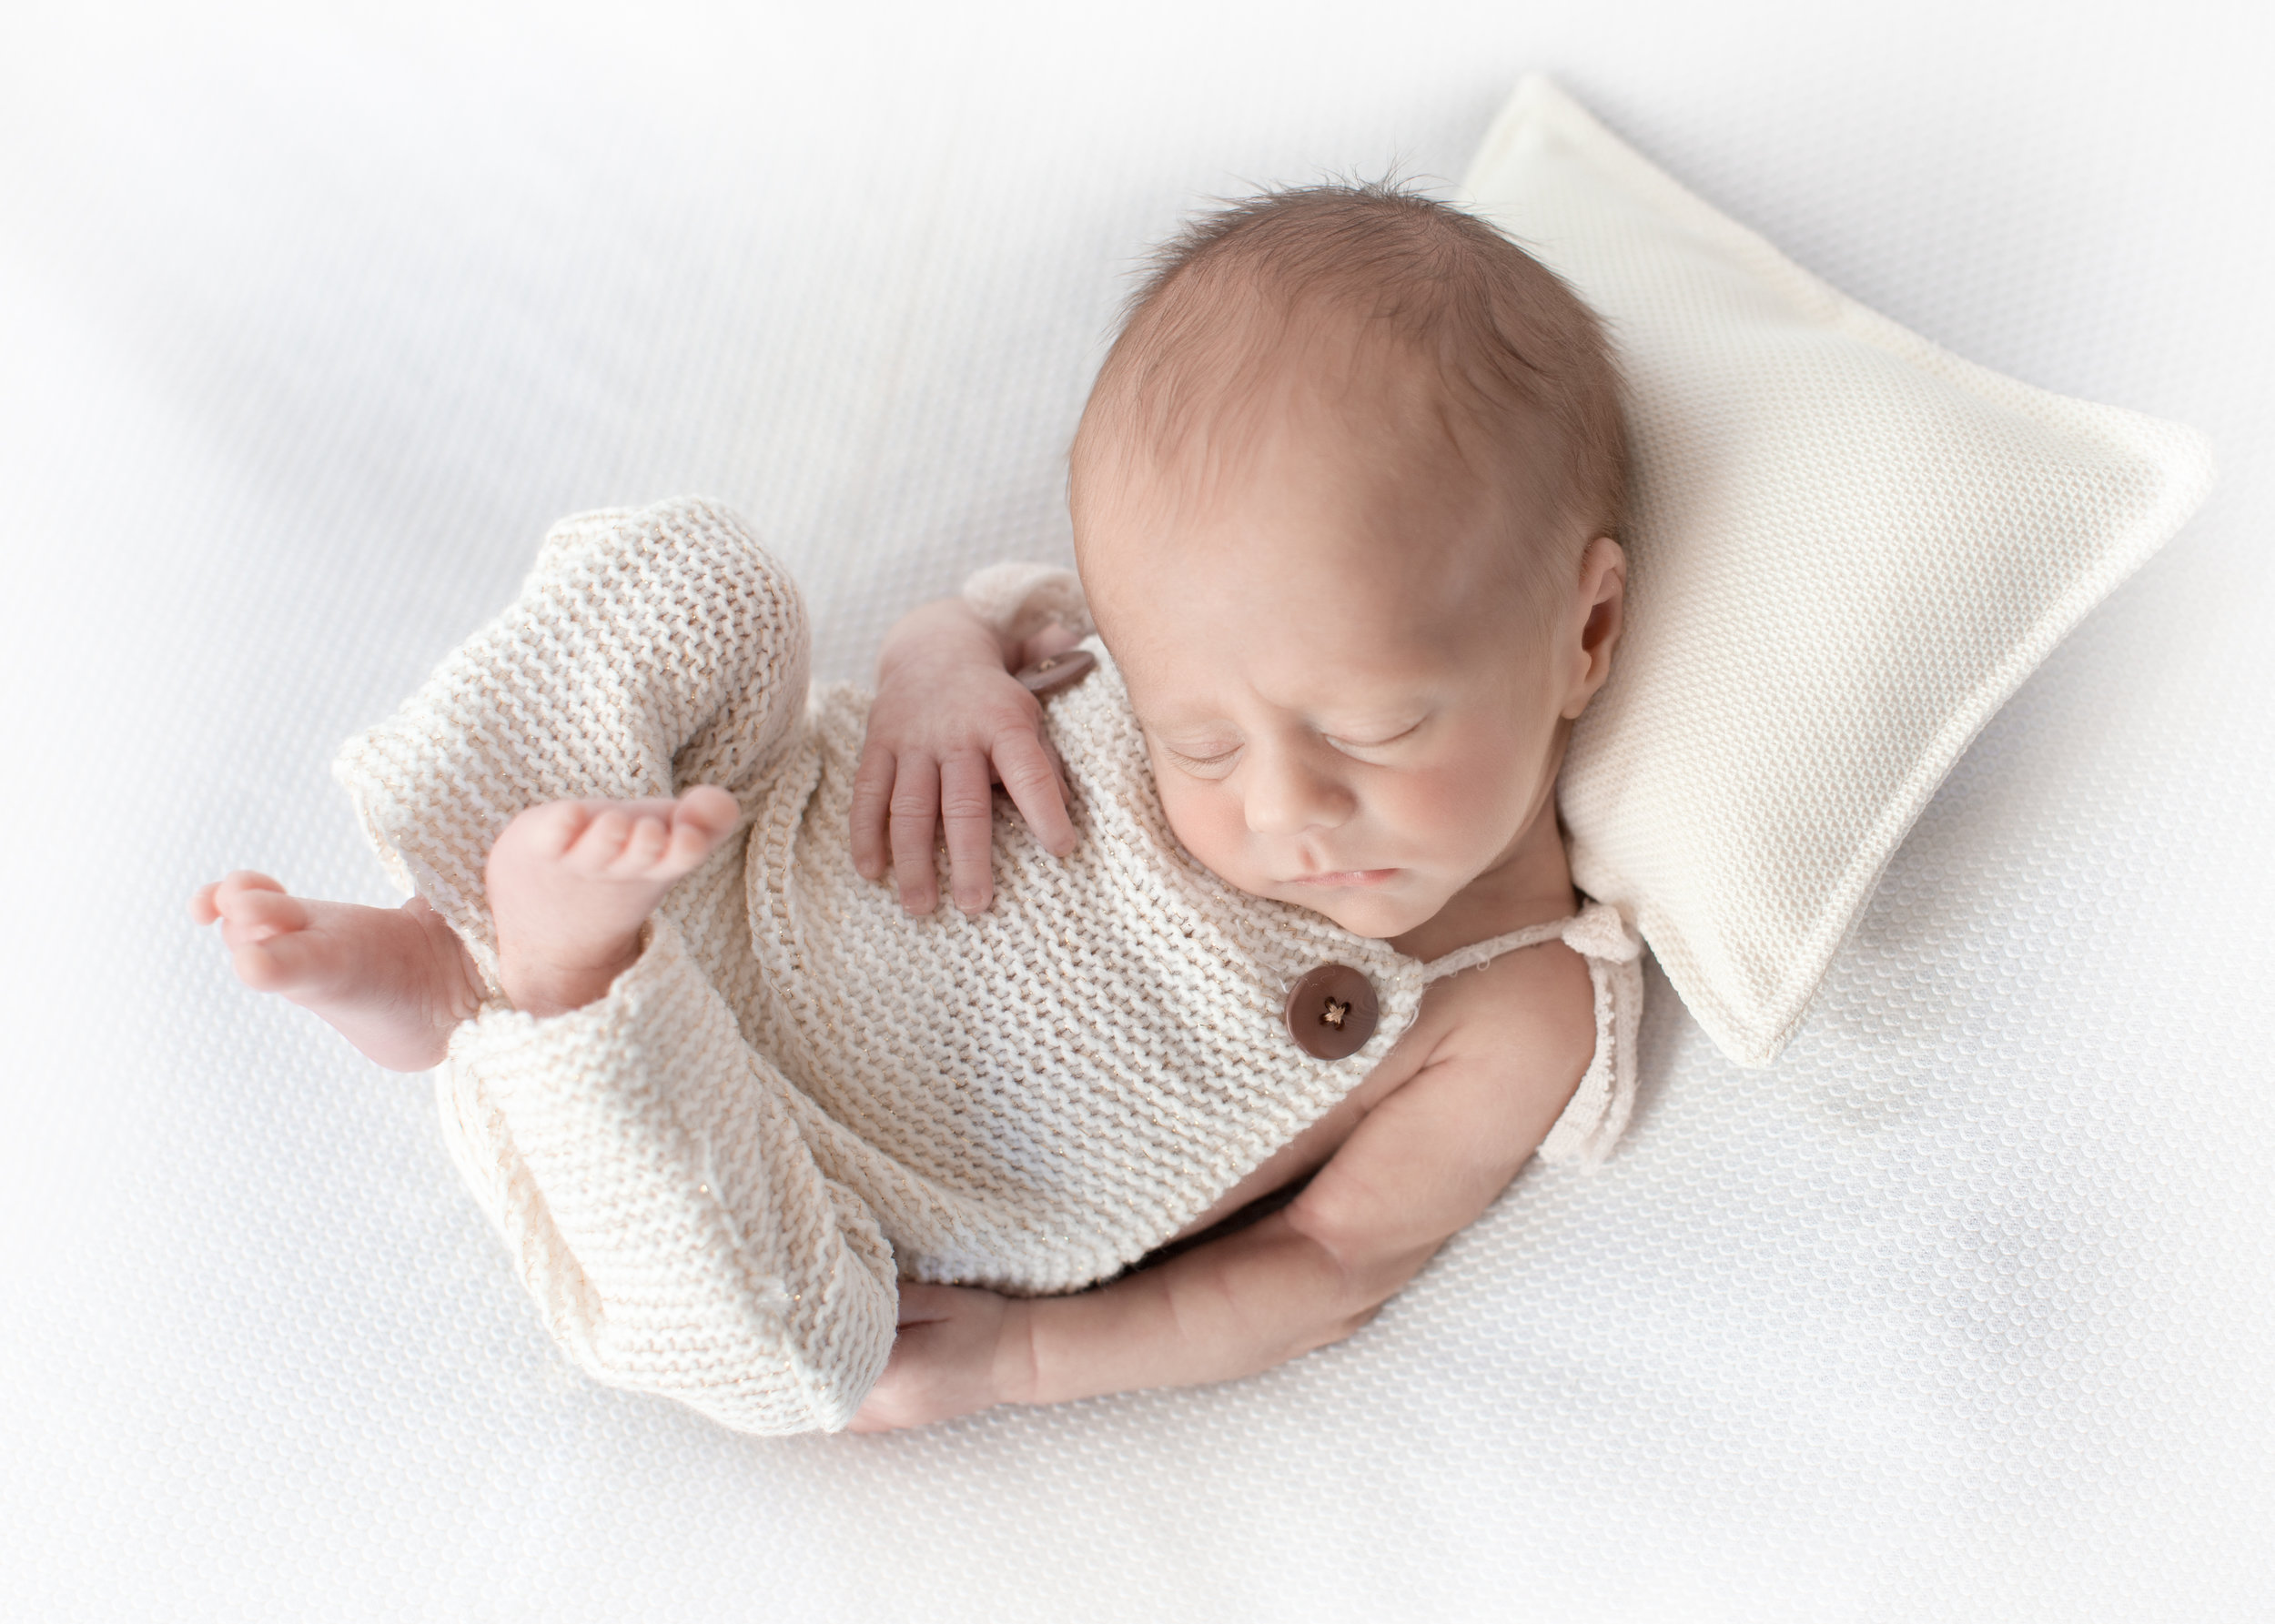 Sweet little newborn baby boy sleeping soundly on a pillow wearing a cute little outfit. Calgary and Airdrie Newborn Photographer. Captured by Milashka Photography.